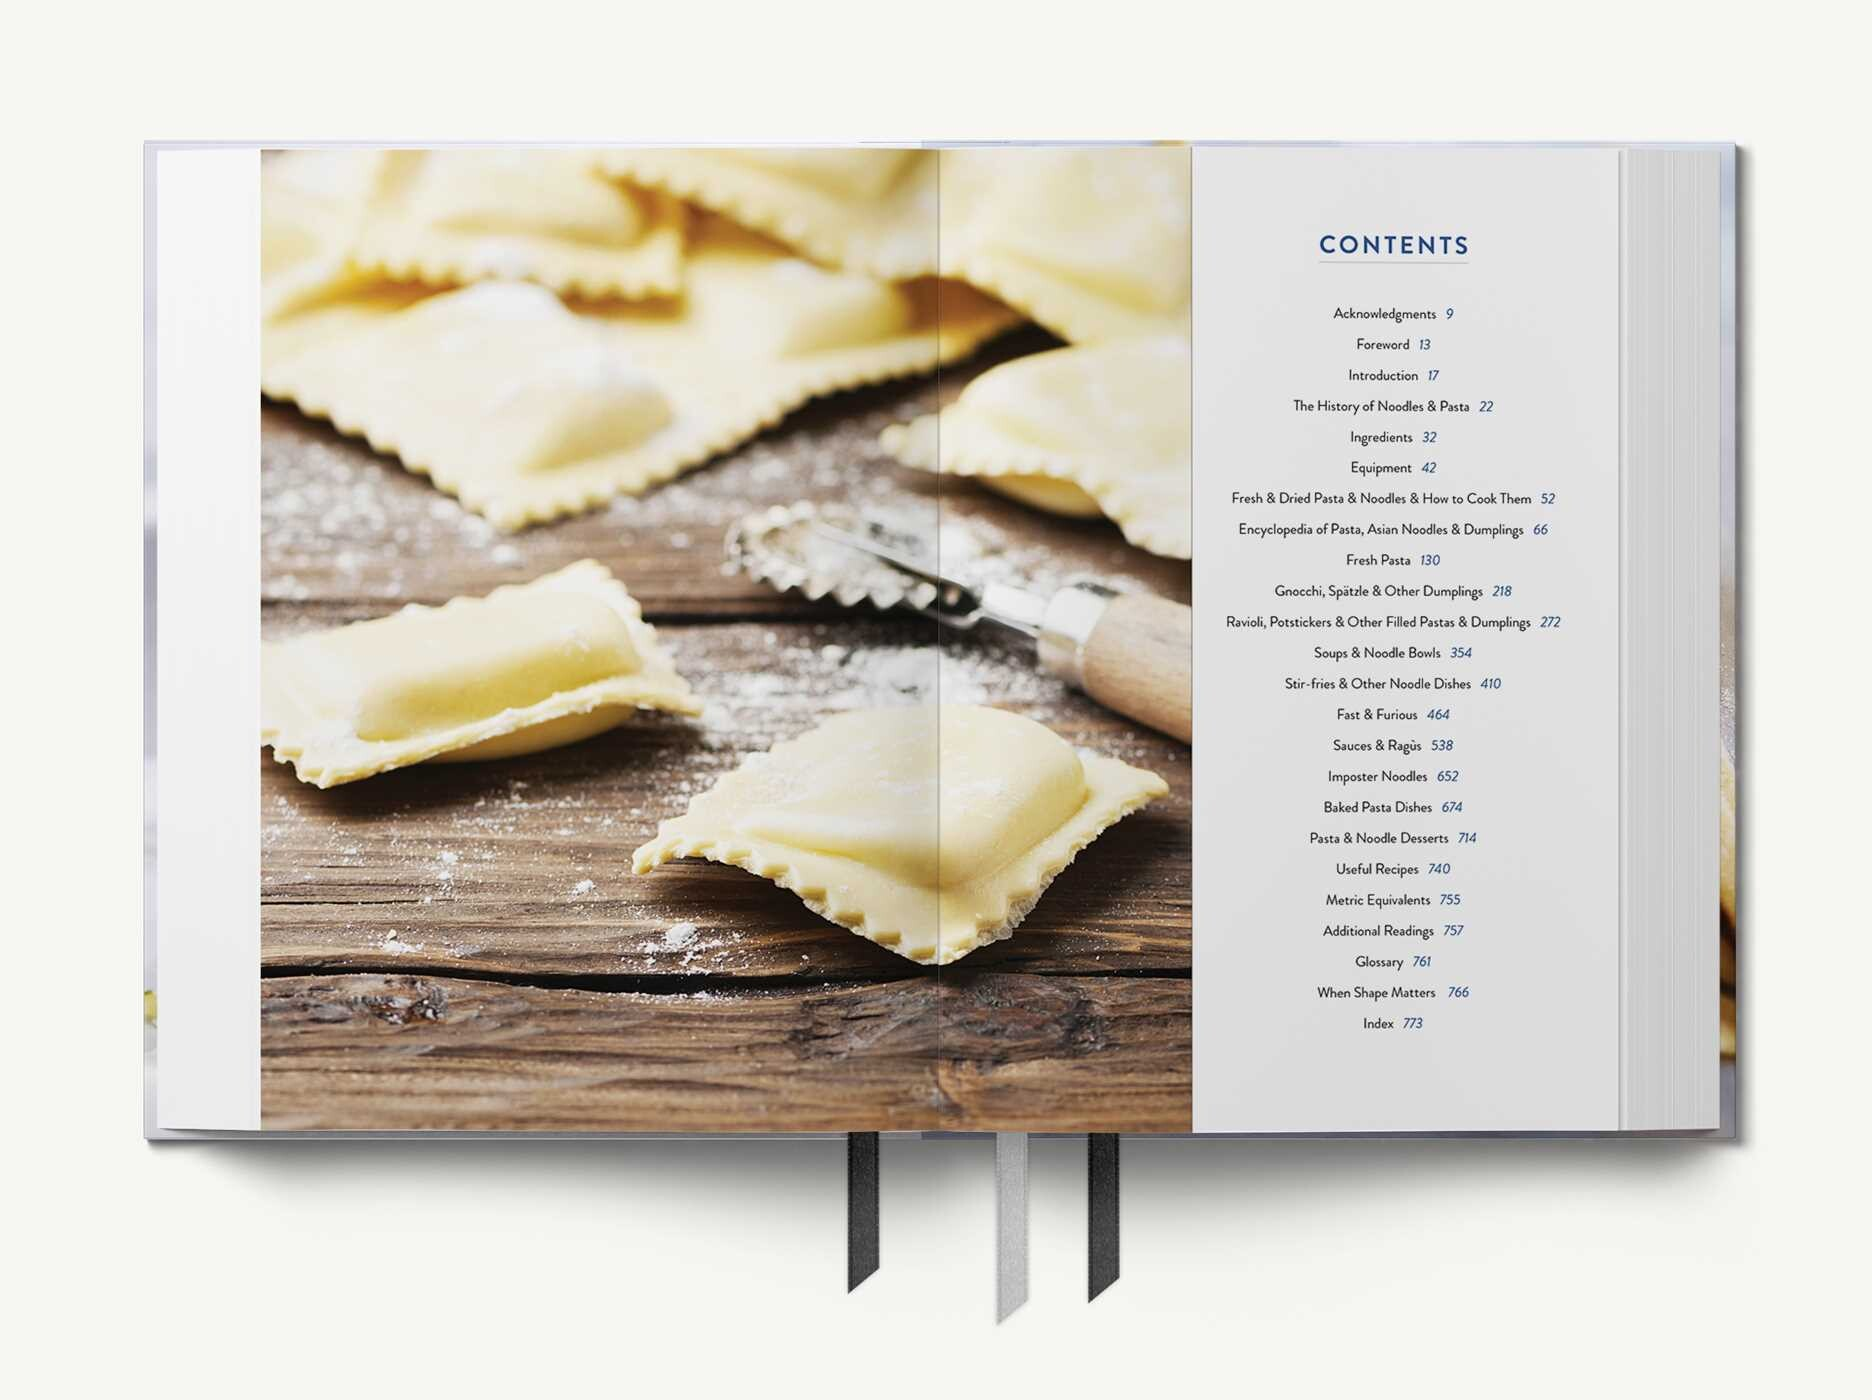 The ultimate pasta and noodle cookbook 9781604337334.in02